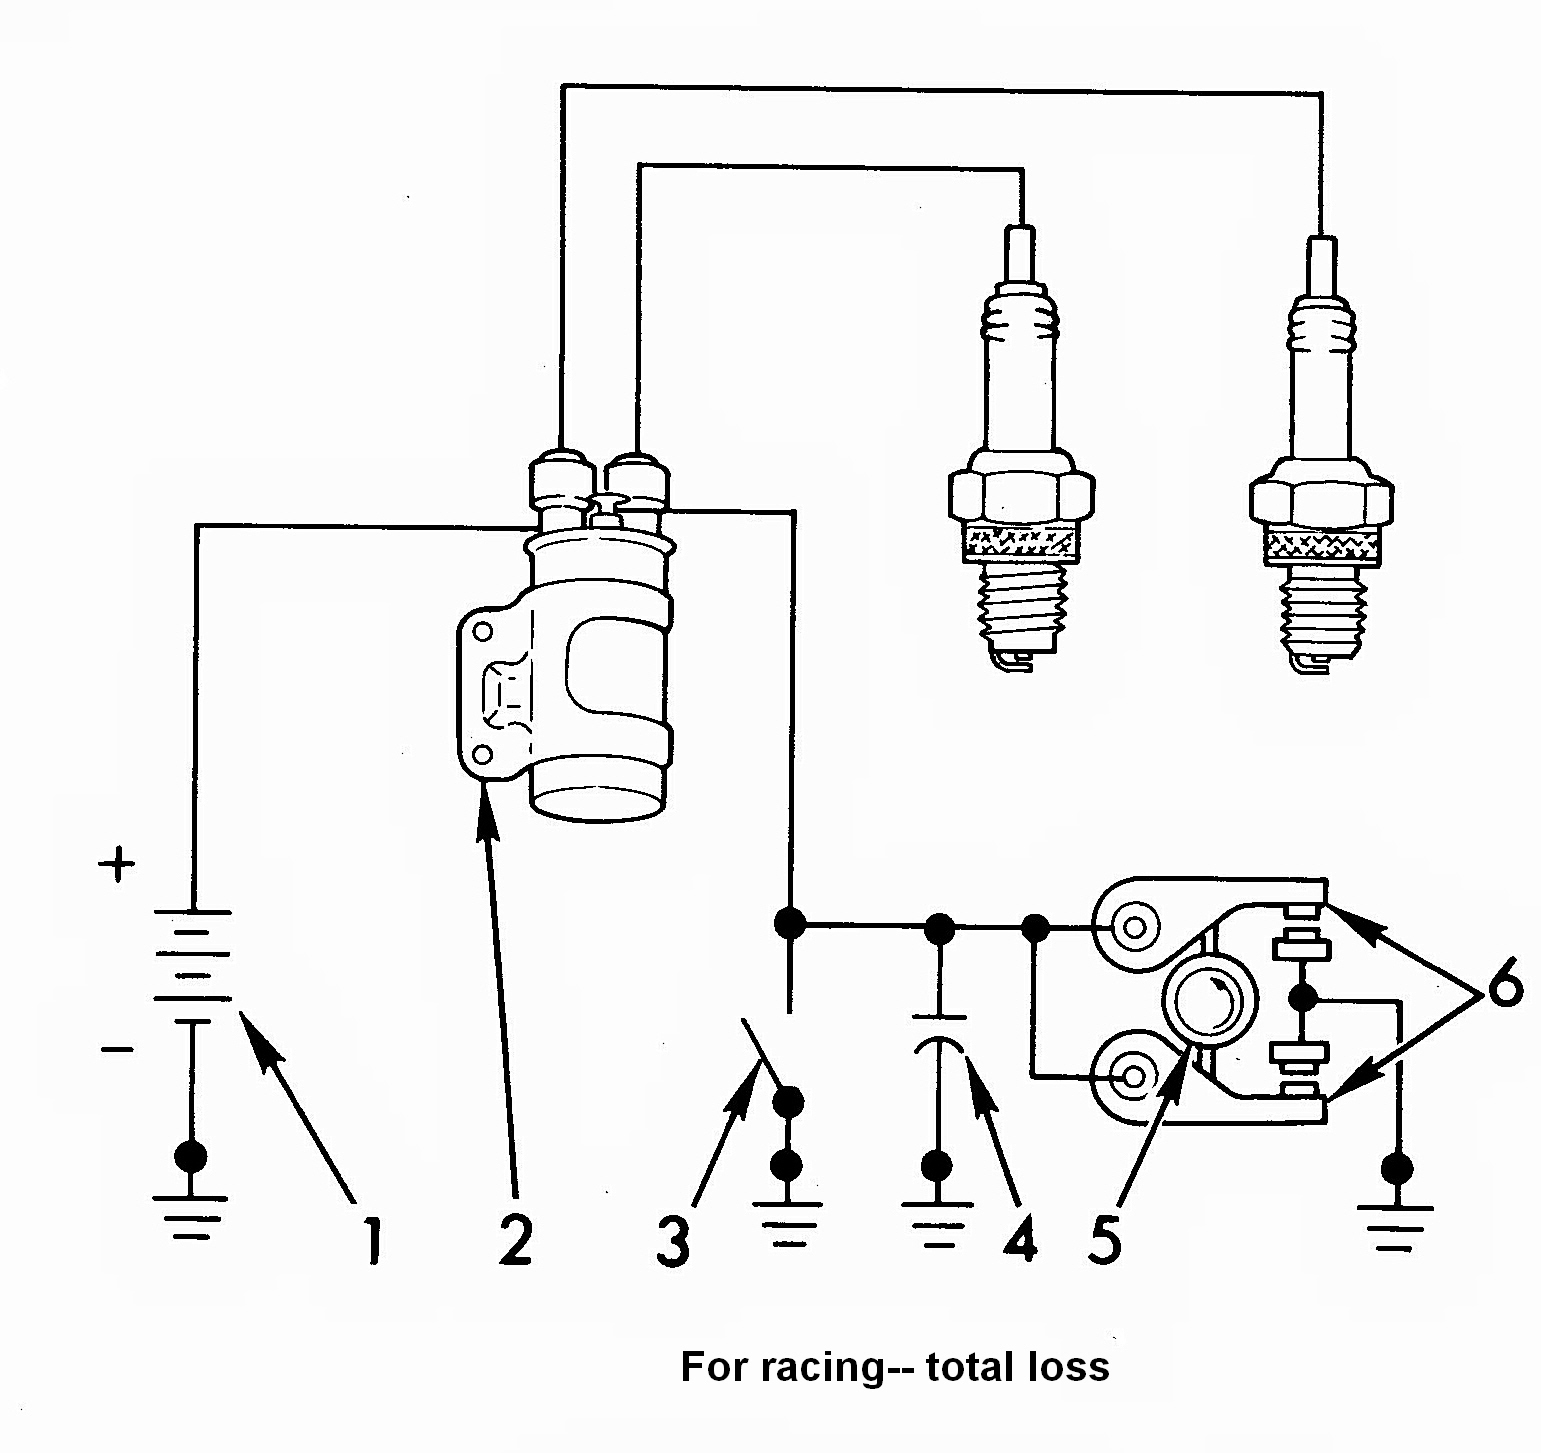 ignition coils street racing wiring diagram